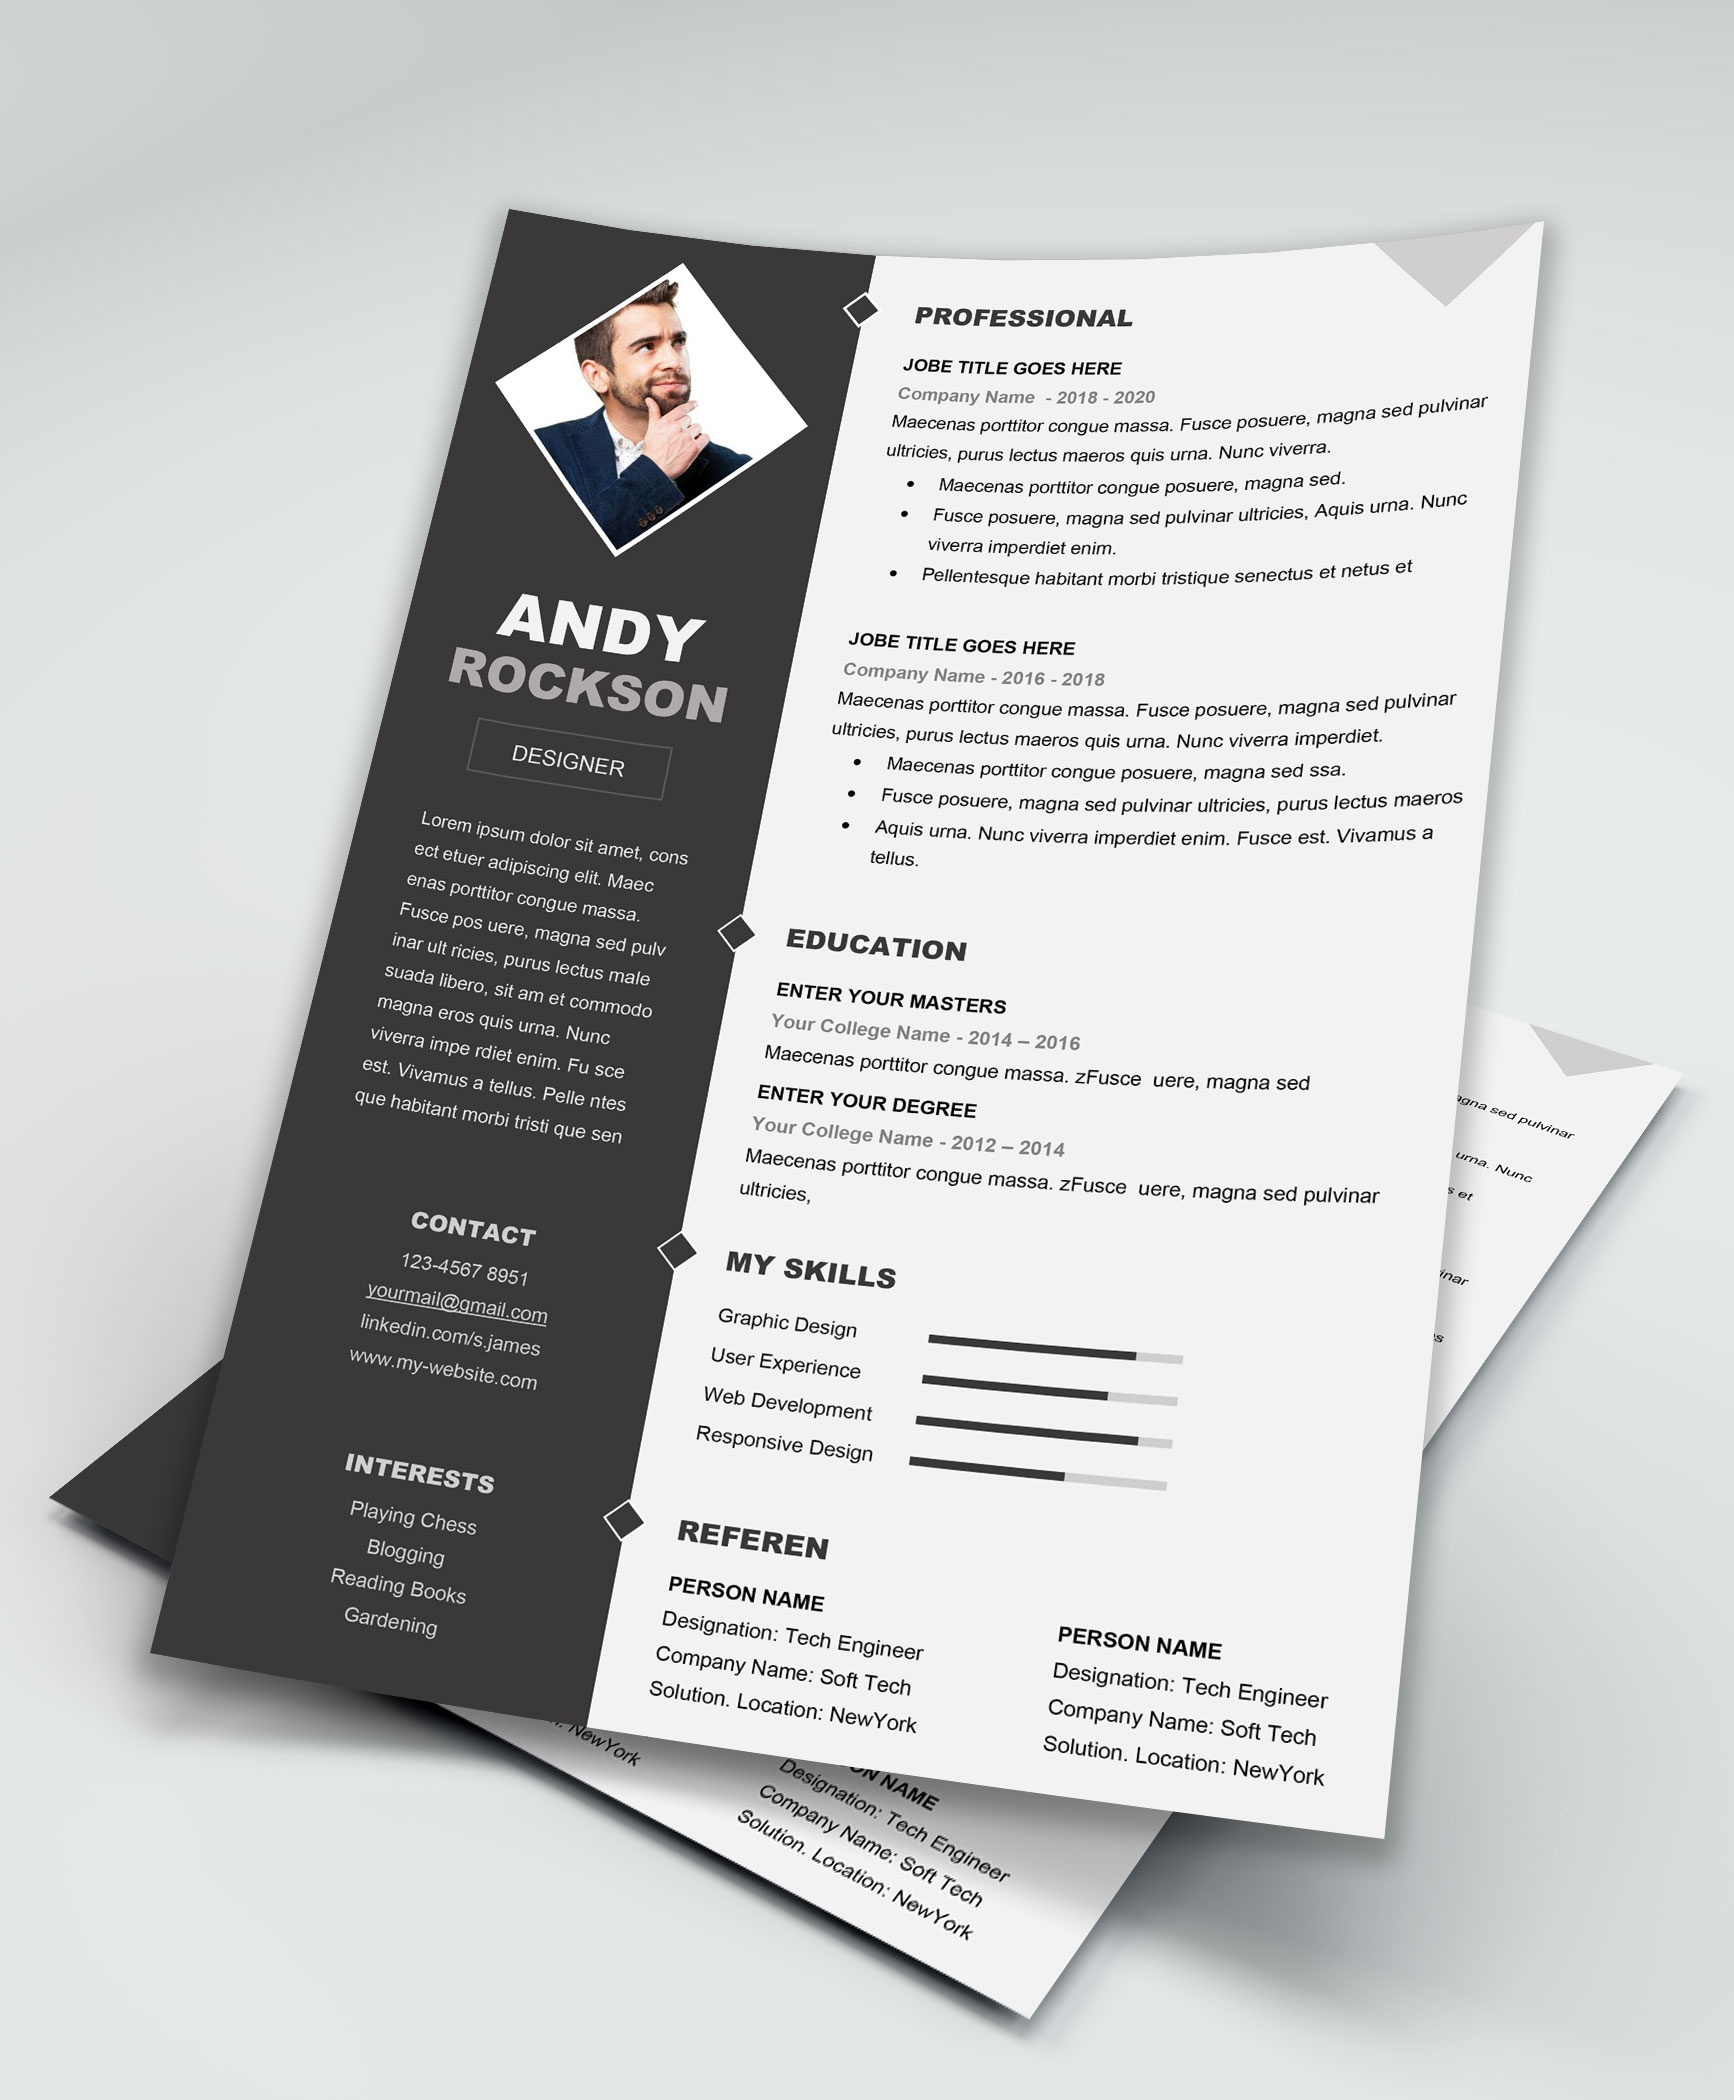 Microsoft Word Resume Template Where Can I Find The Best Resume Templates For Ms Word Quora